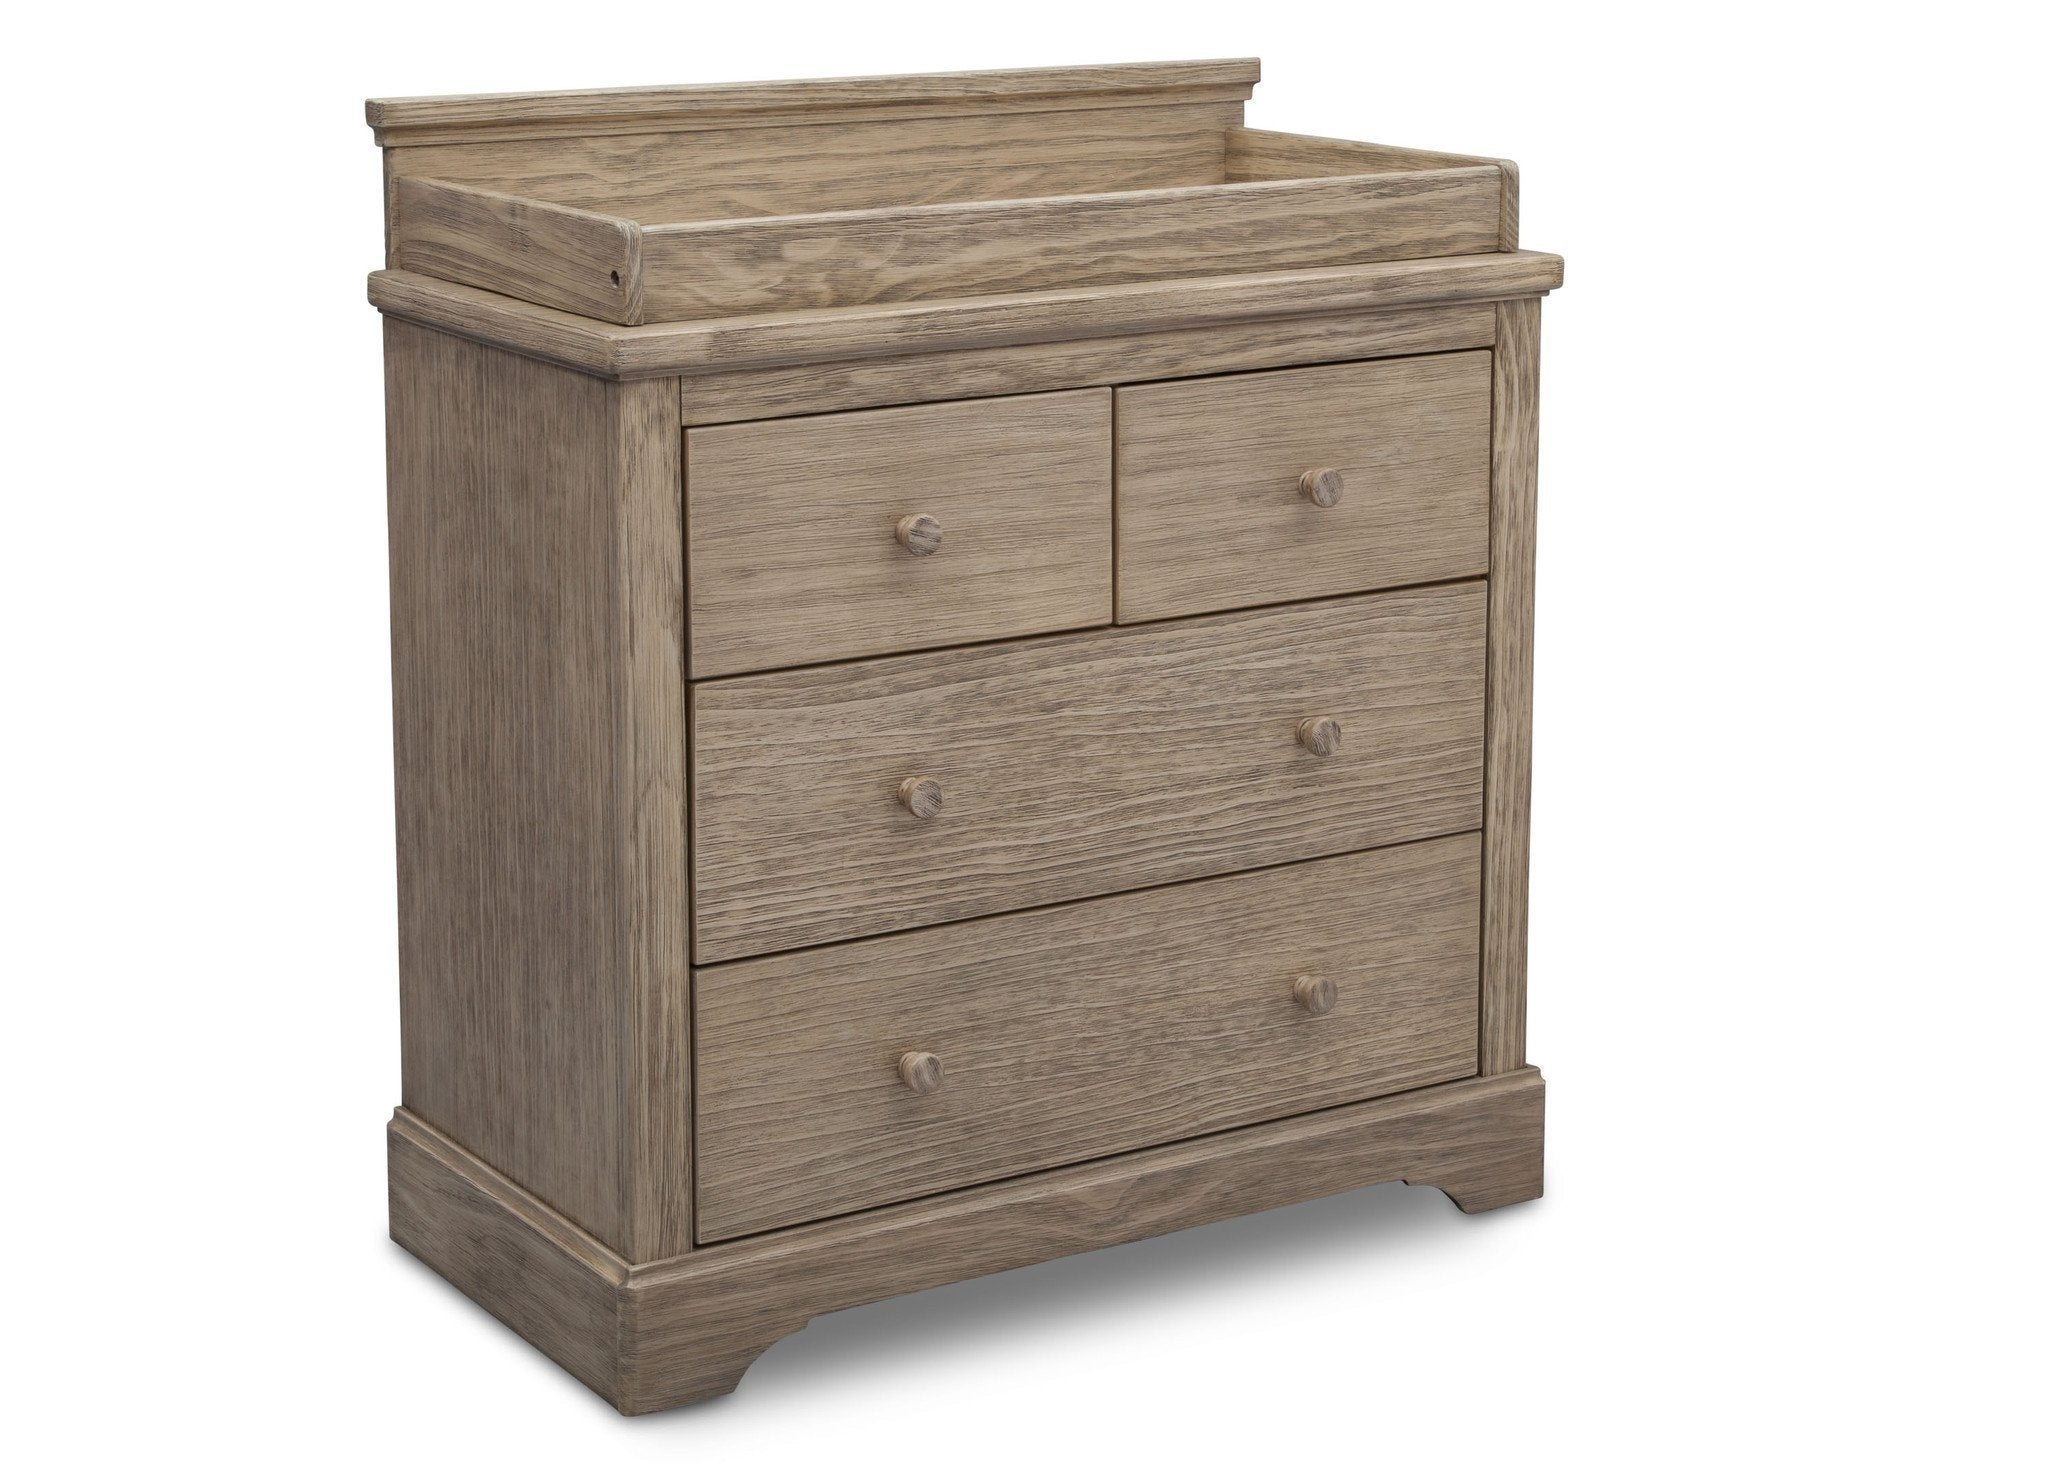 Simmons Kids Rustic Driftwood (112) Paloma 4 Drawer Dresser, Side View b1b